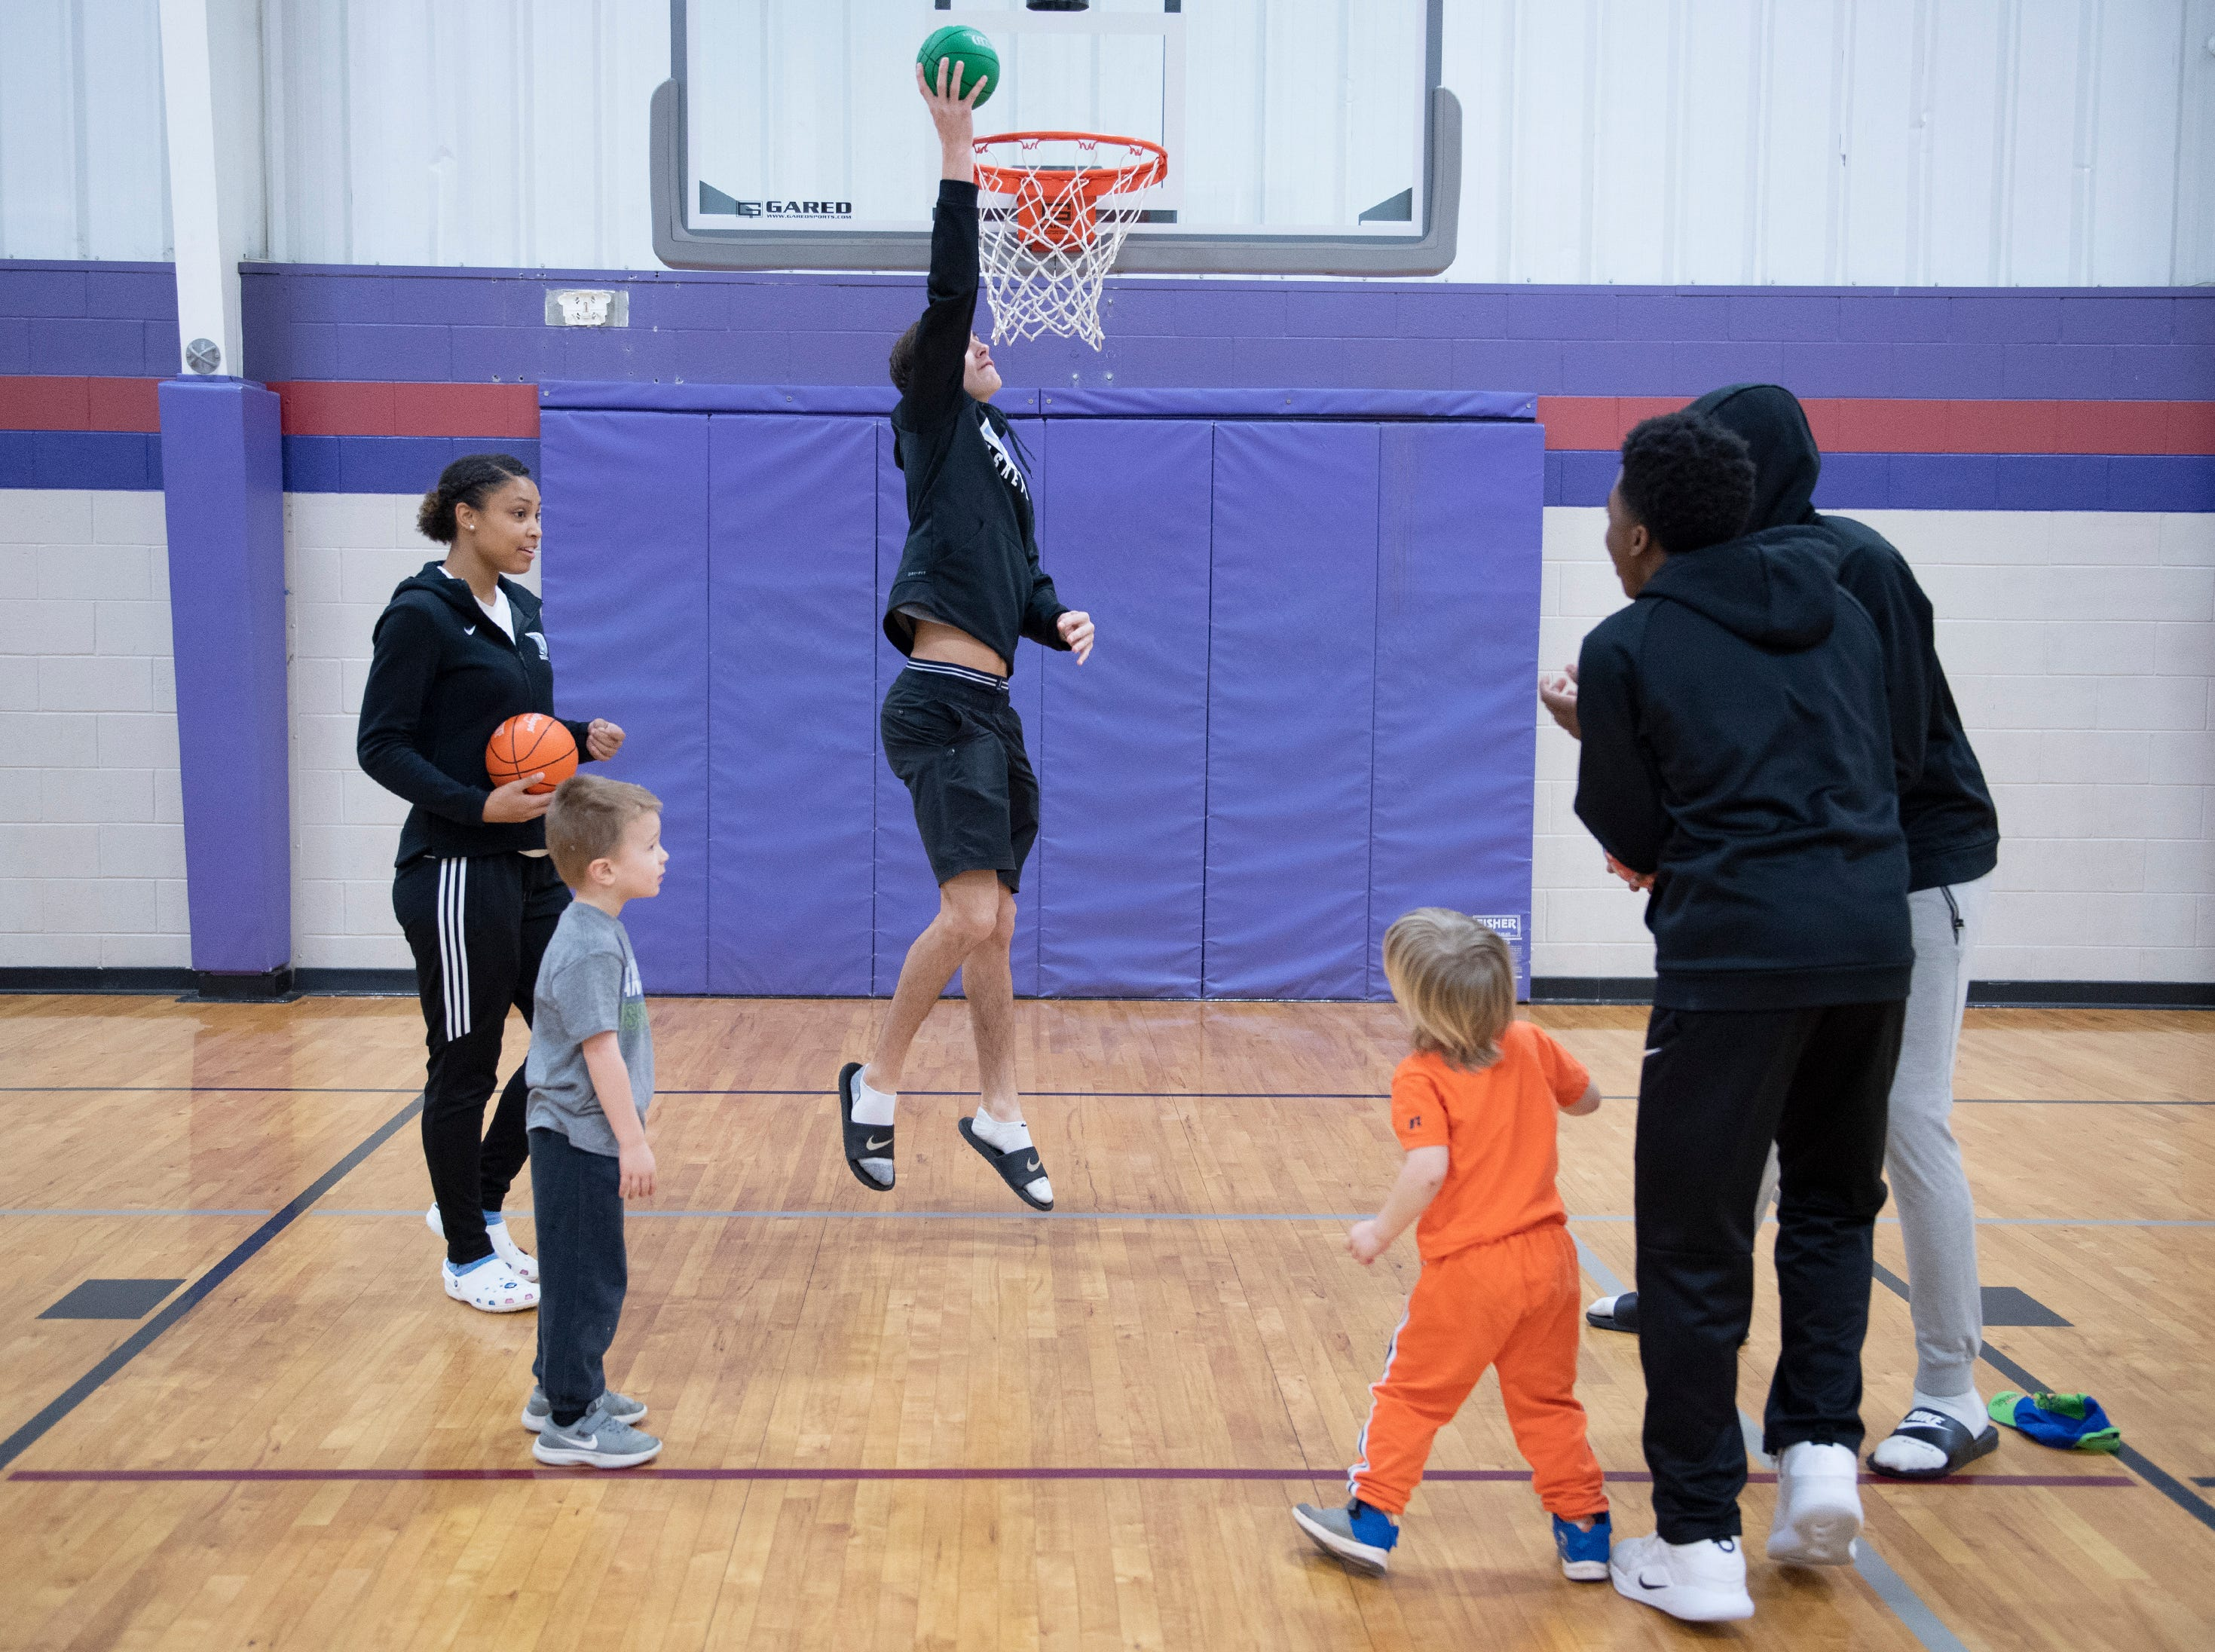 D.W. Daniel High School basketball players work with young children and their parents at the Smart Start Basketball program at Central-Clemson Recreational Center Saturday, Feb. 2, 2019.